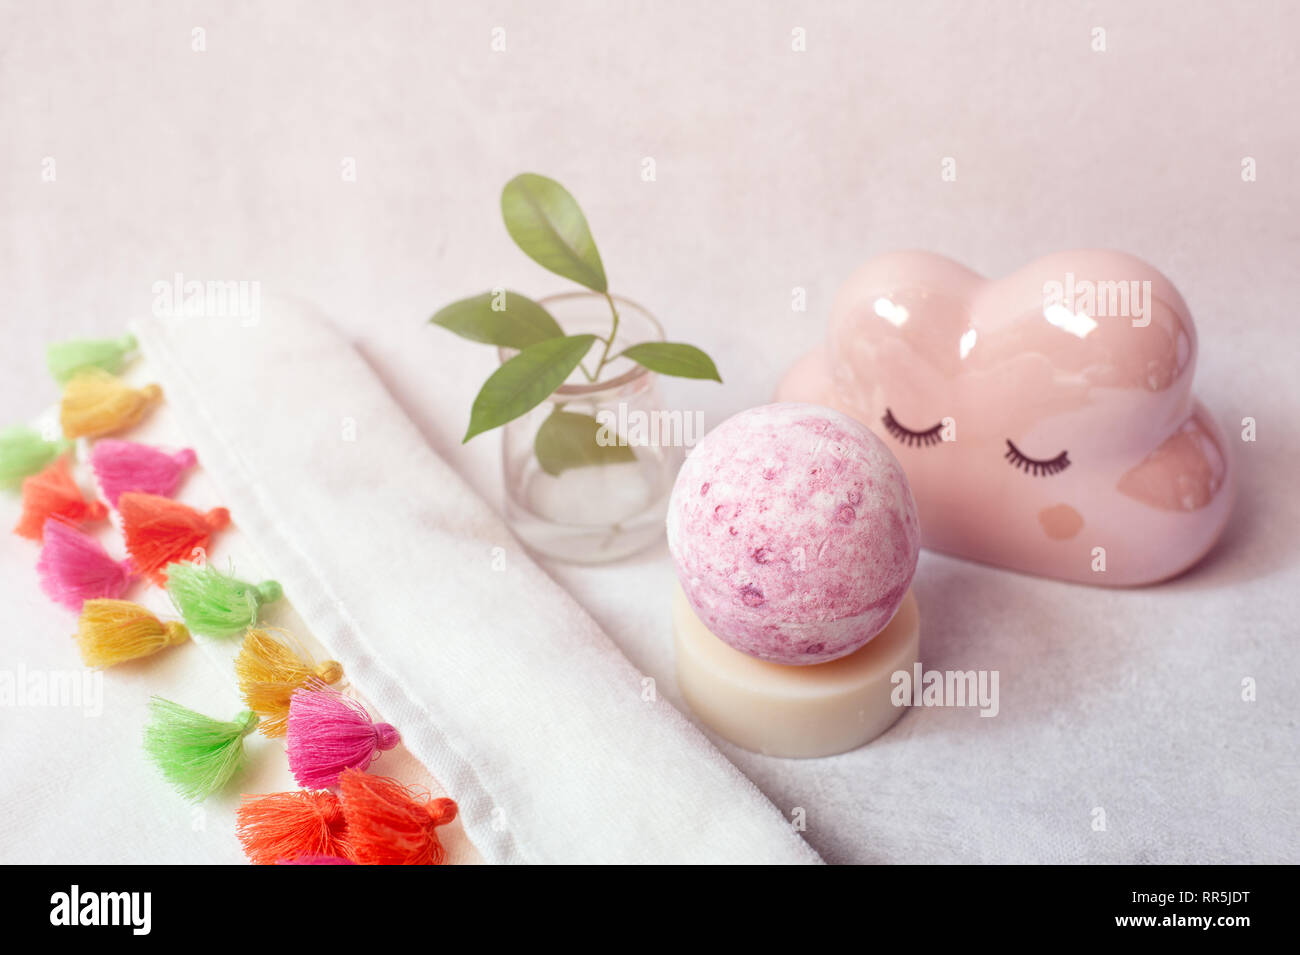 Spa bath cosmetic. Soap beauty treatment background. Aromatherapy with natural salt and bath bomb. - Stock Image